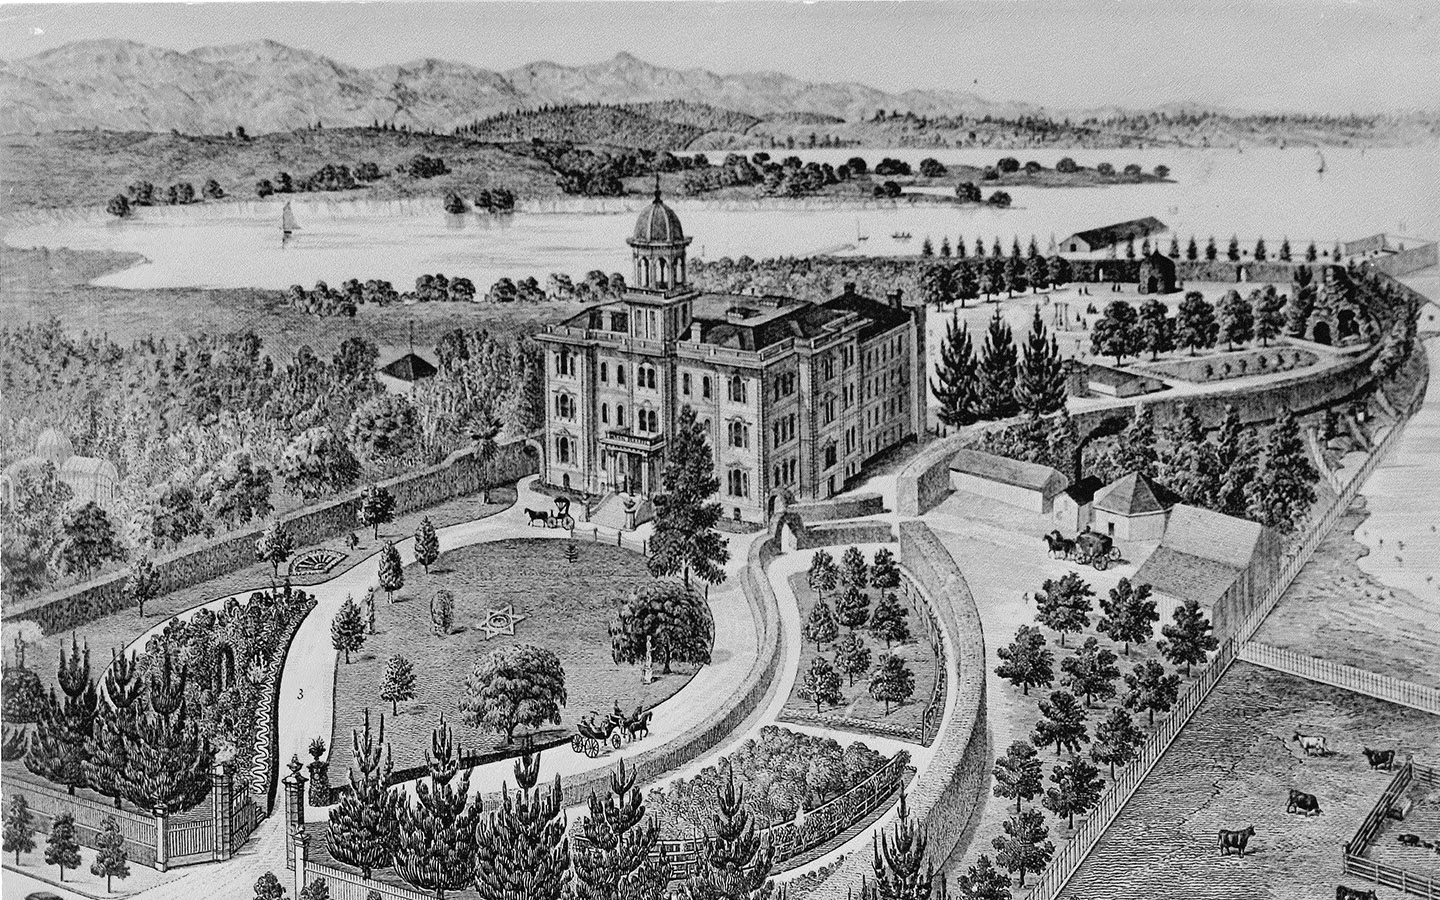 Historical black and white drawing of Holy Names University campus